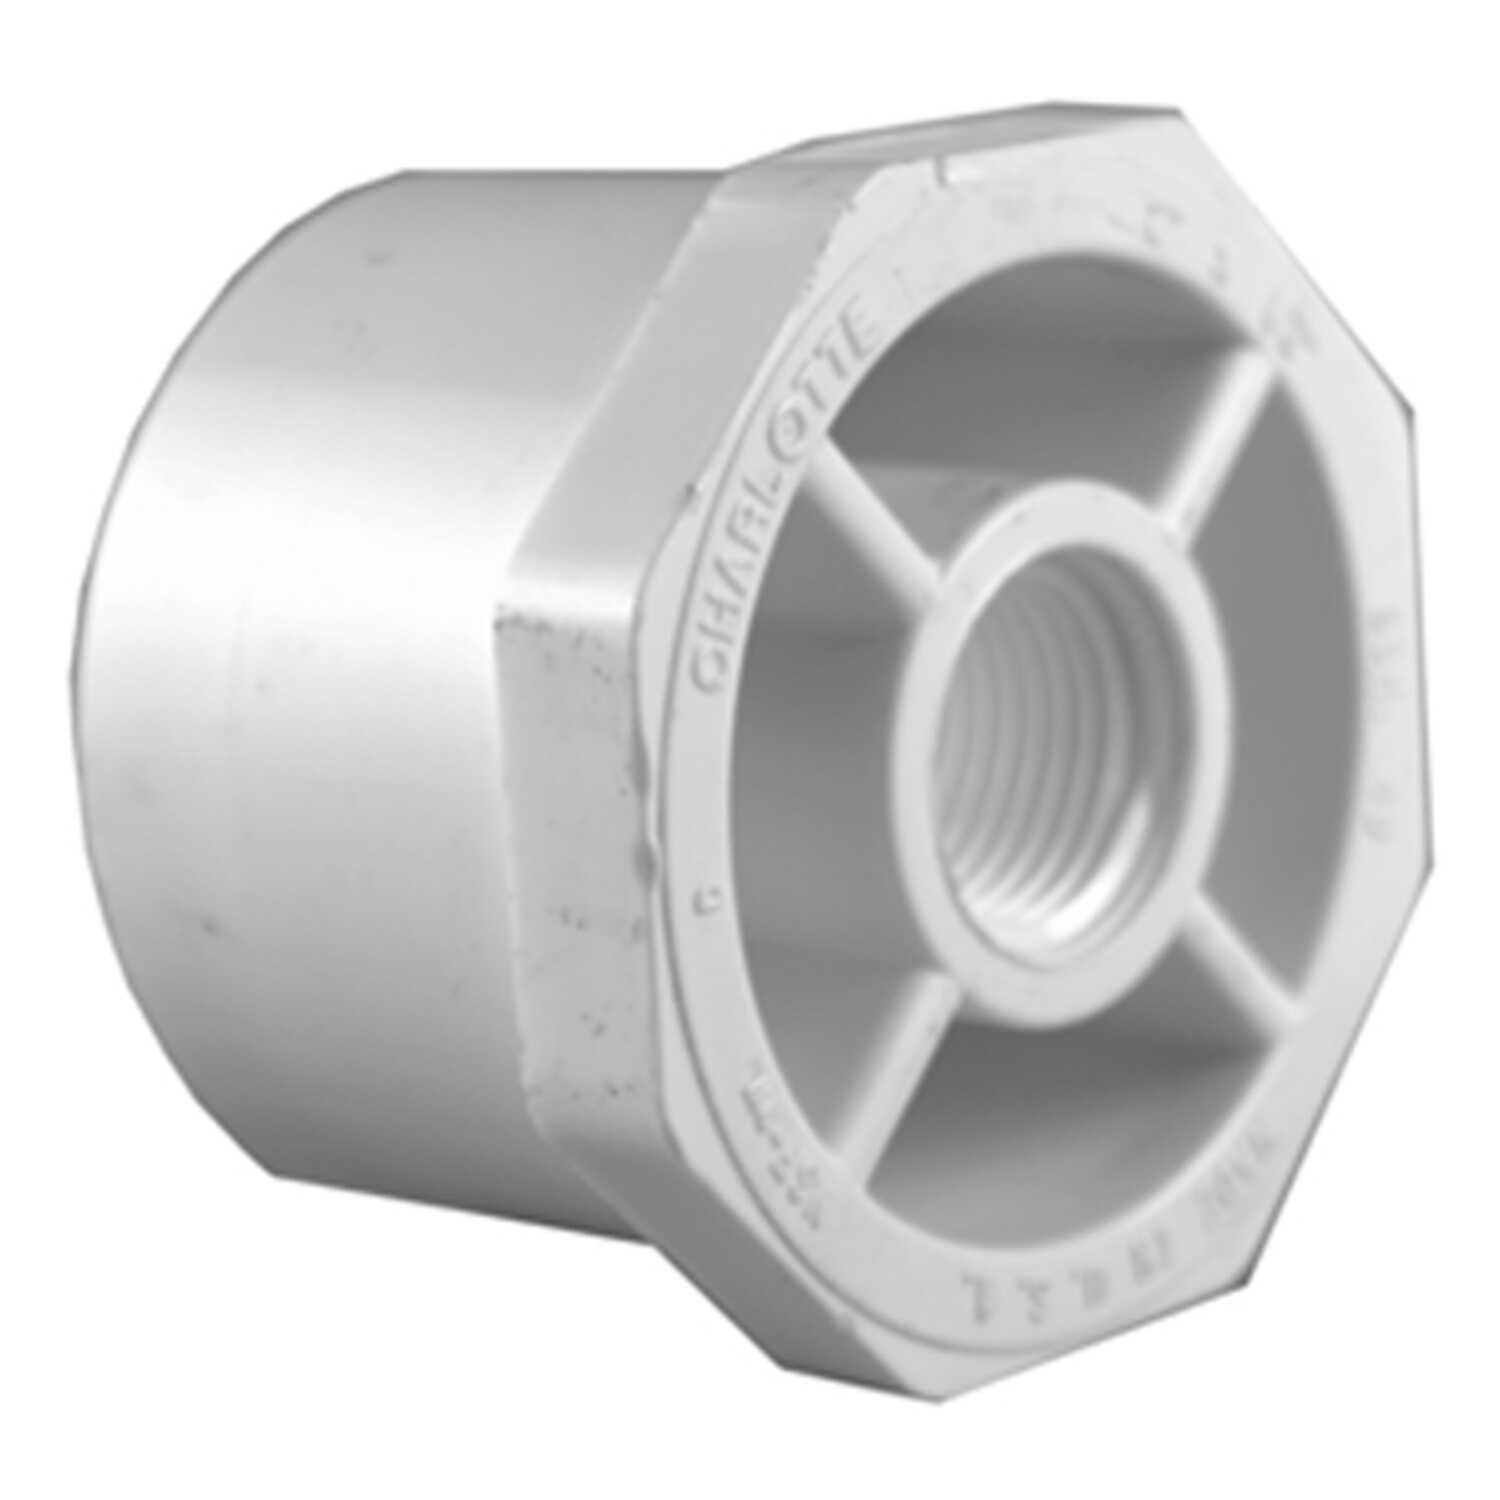 Charlotte Pipe  Schedule 40  1-1/4 in. Spigot   x 1 in. Dia. FPT  PVC  Reducing Bushing